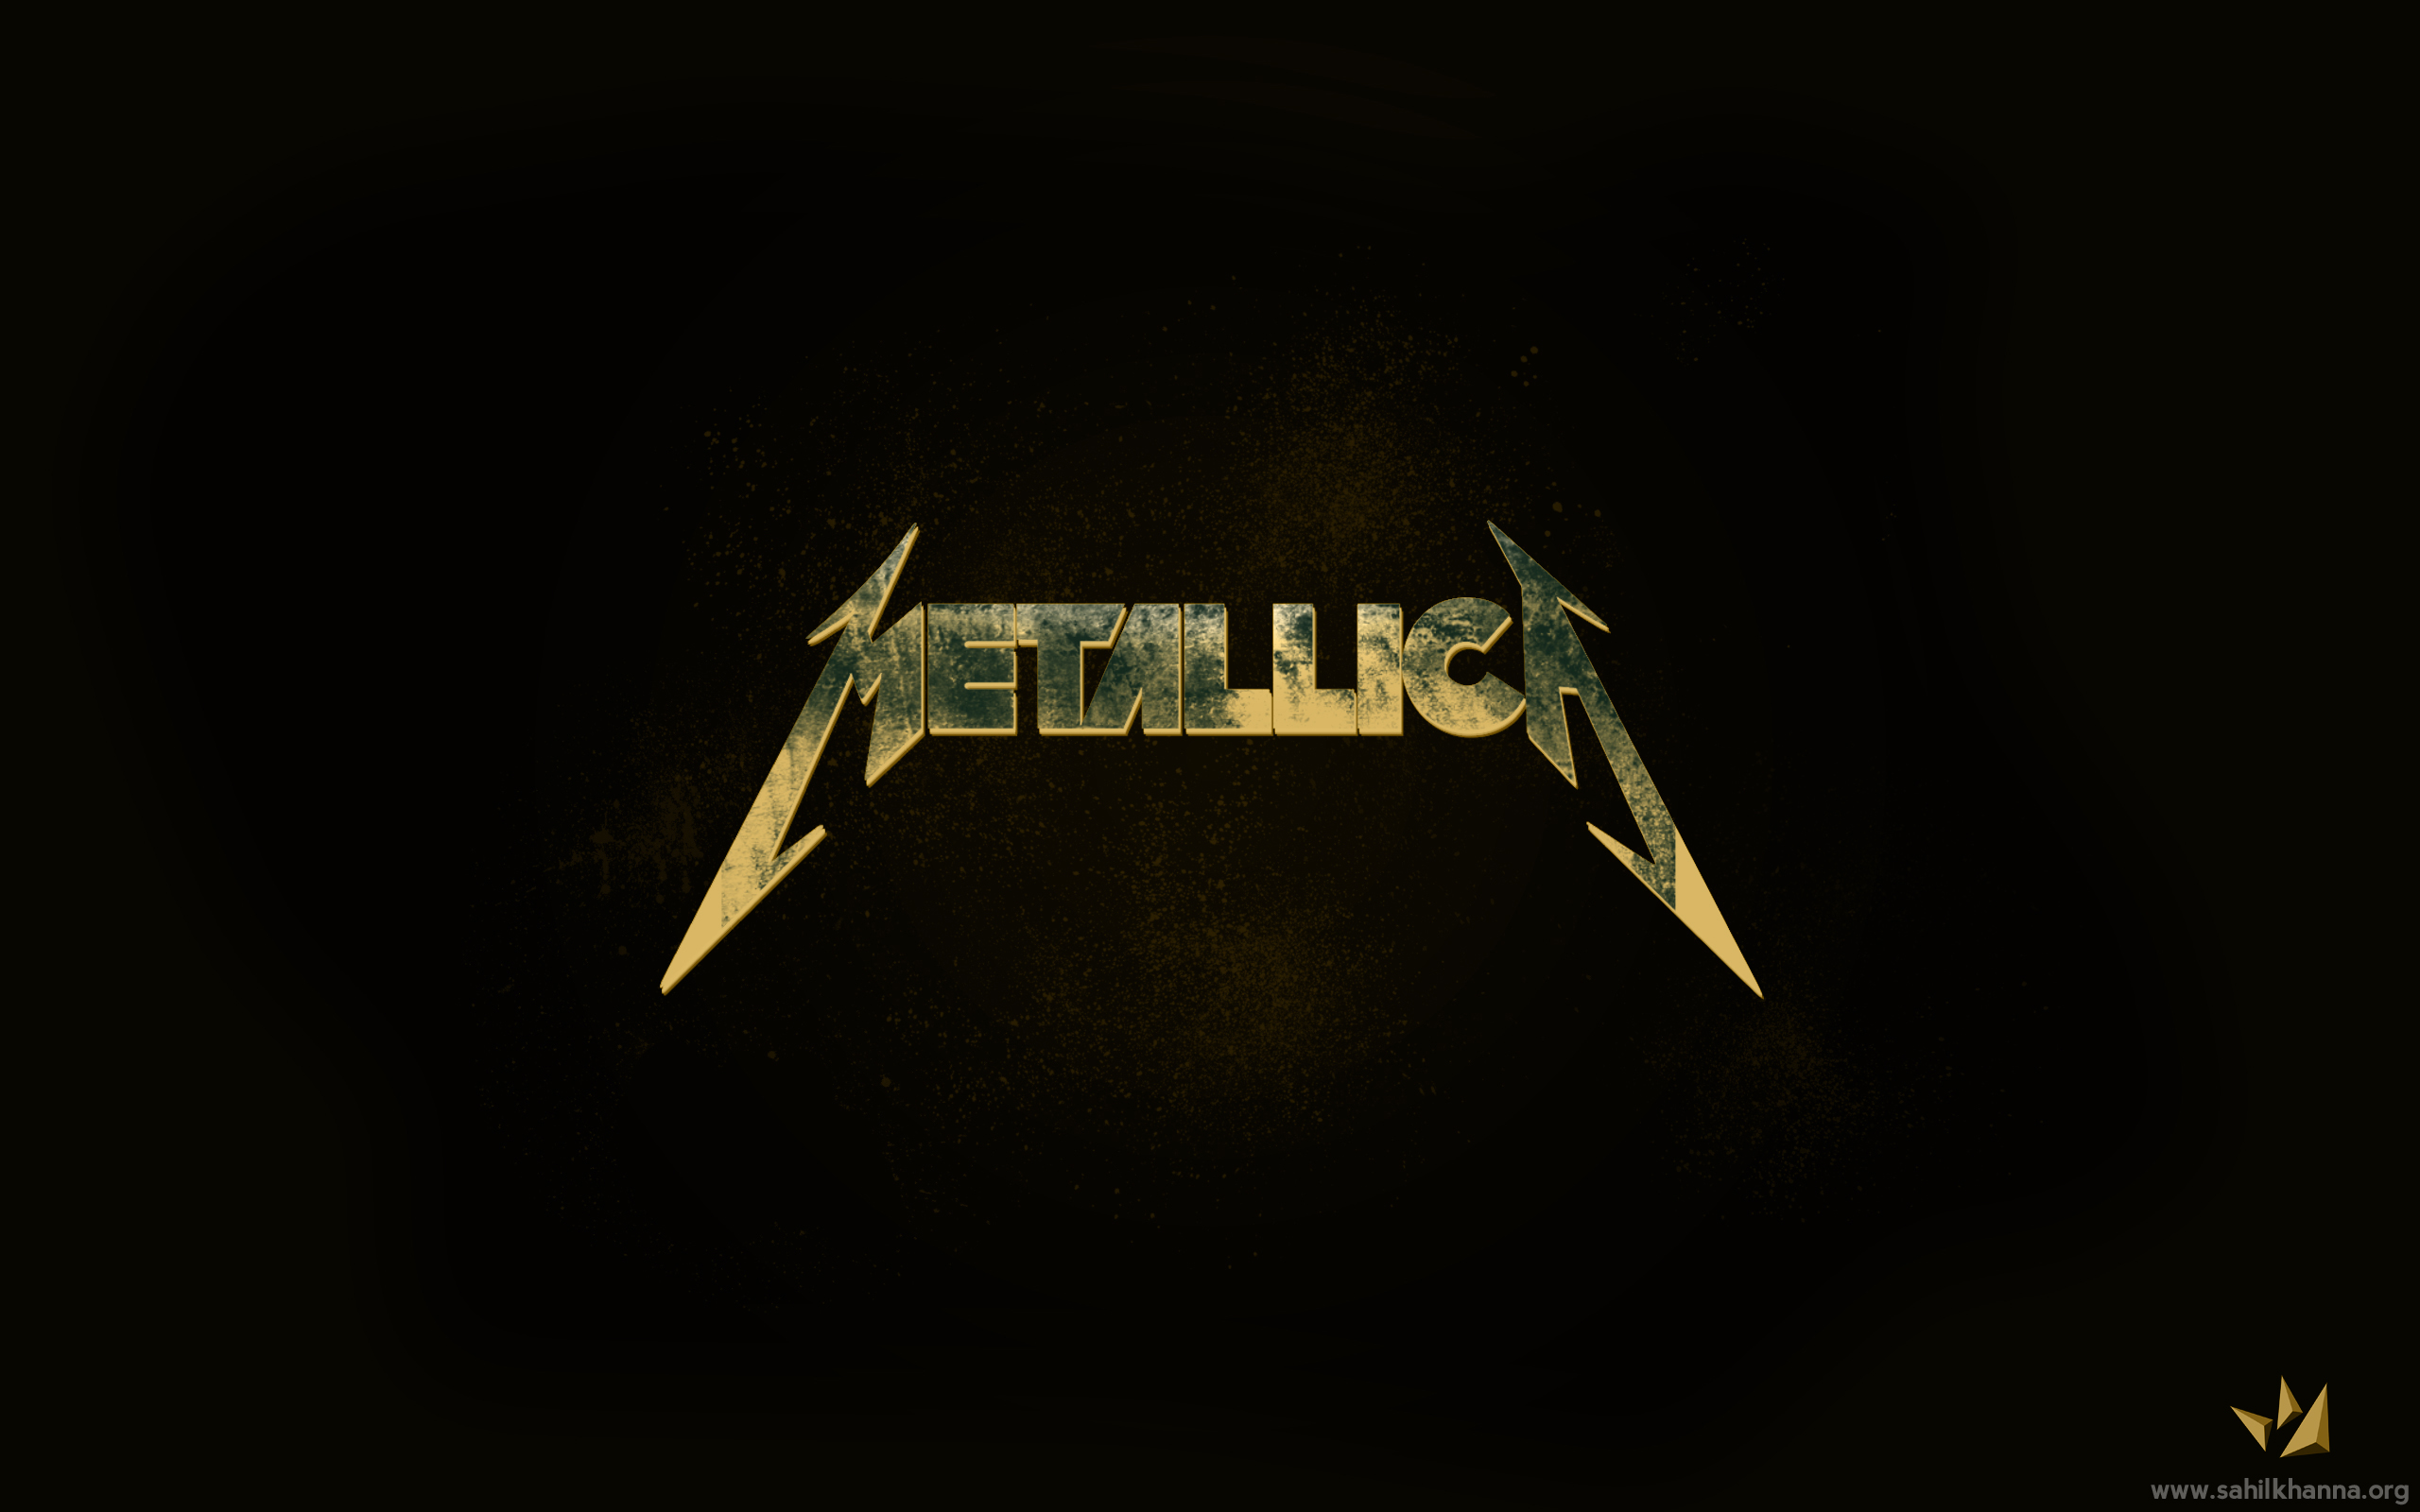 Download Wallpaper High Resolution Metallica - Metallica-Gold  Collection_825176.jpg